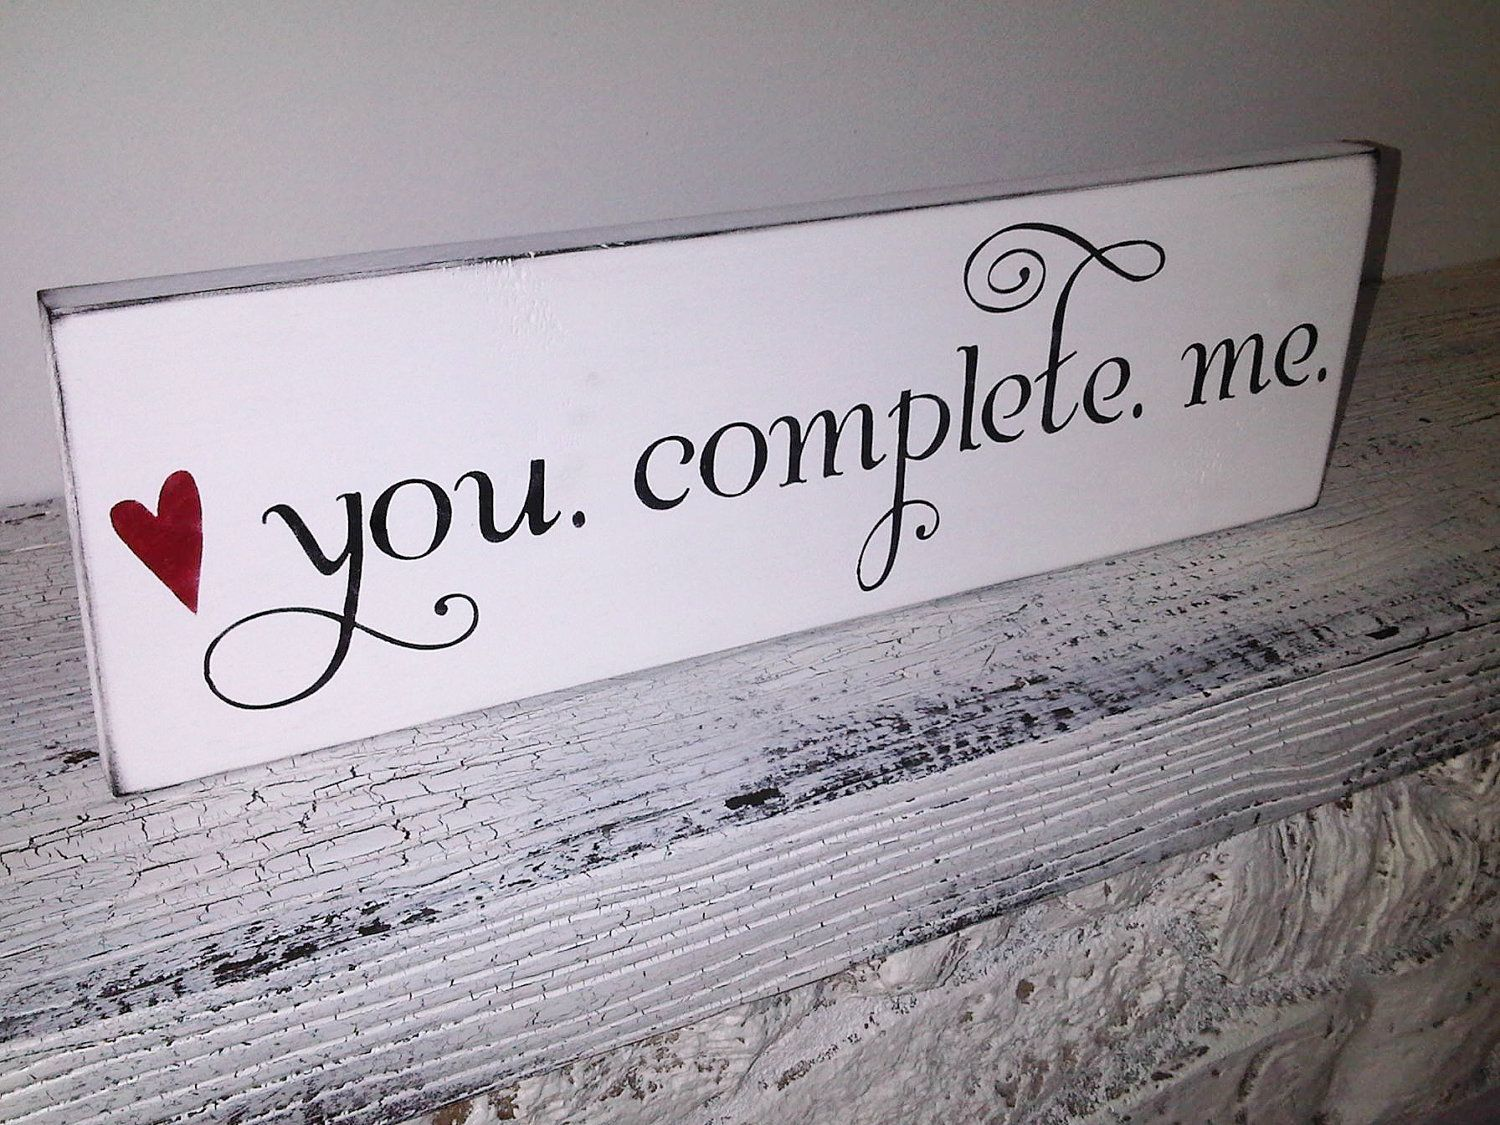 Romantic Gift For Husband On Wedding Day : romantic gifts for husband diy wedding gifts wedding signs wedding fun ...